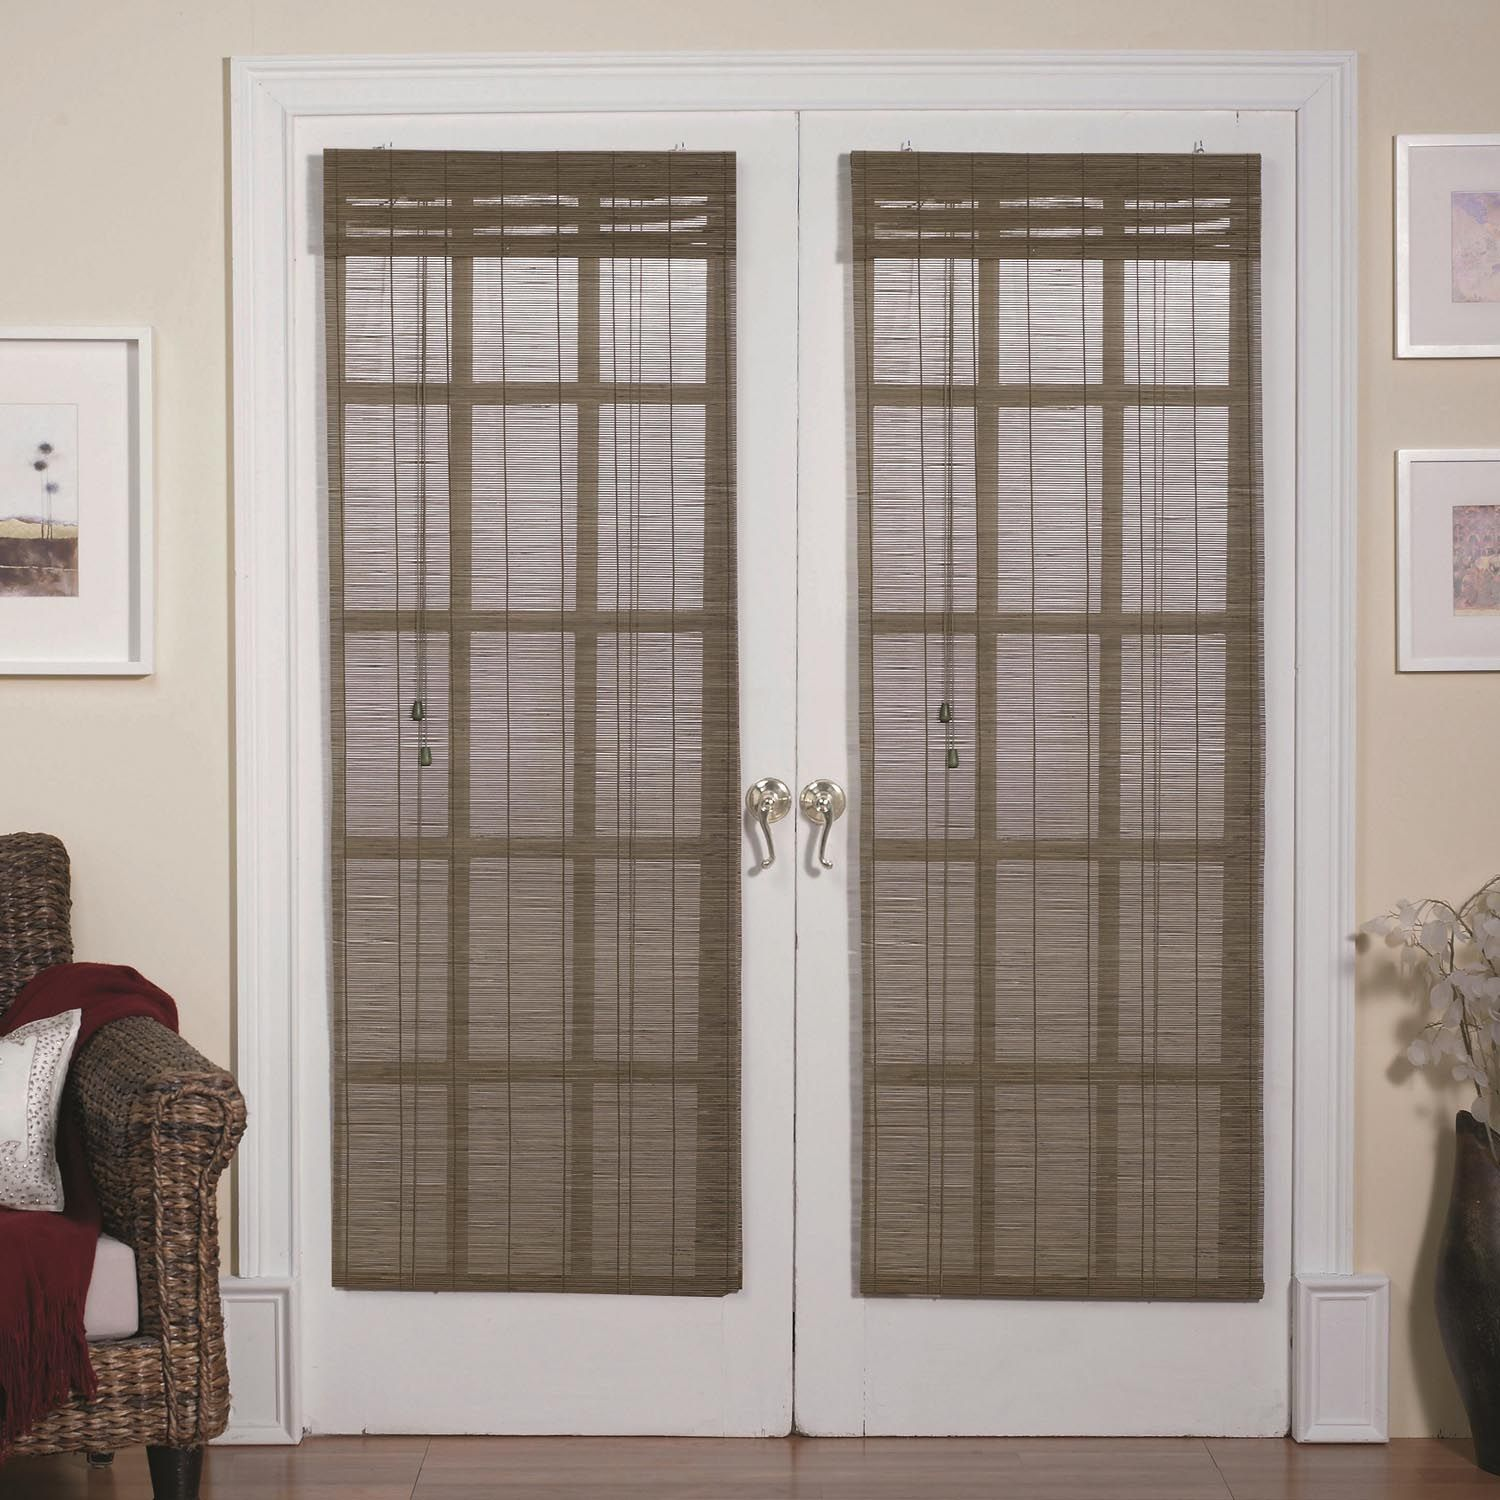 of style door with in patio spotlats blinds doors for french built